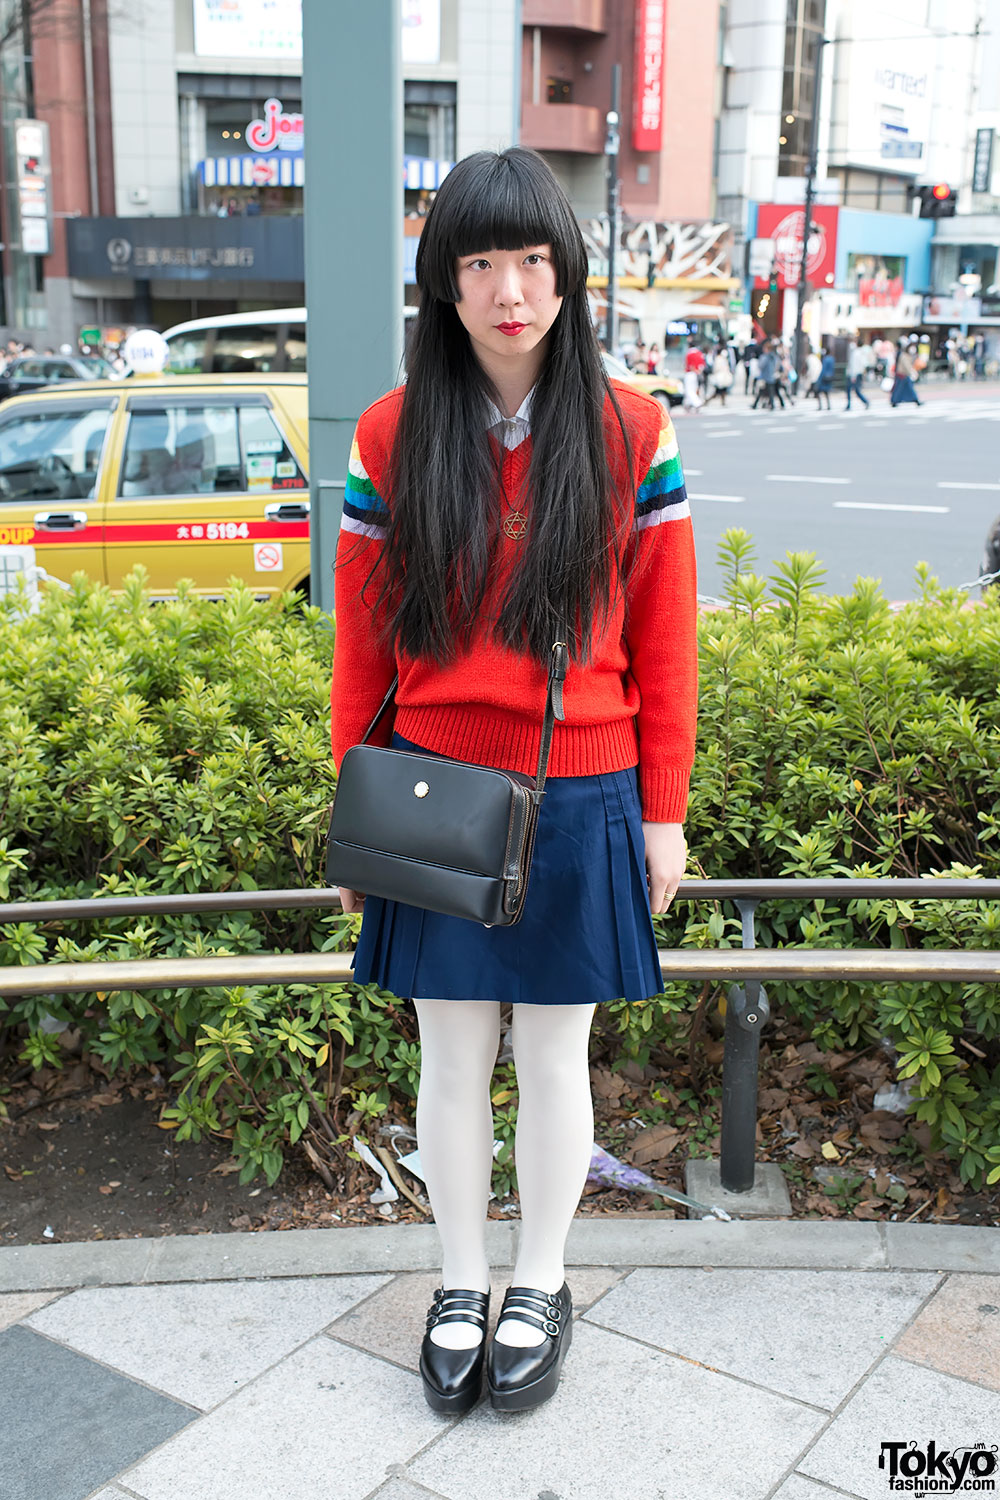 retro style w marie claire paris bag long hair sweater in harajuku. Black Bedroom Furniture Sets. Home Design Ideas